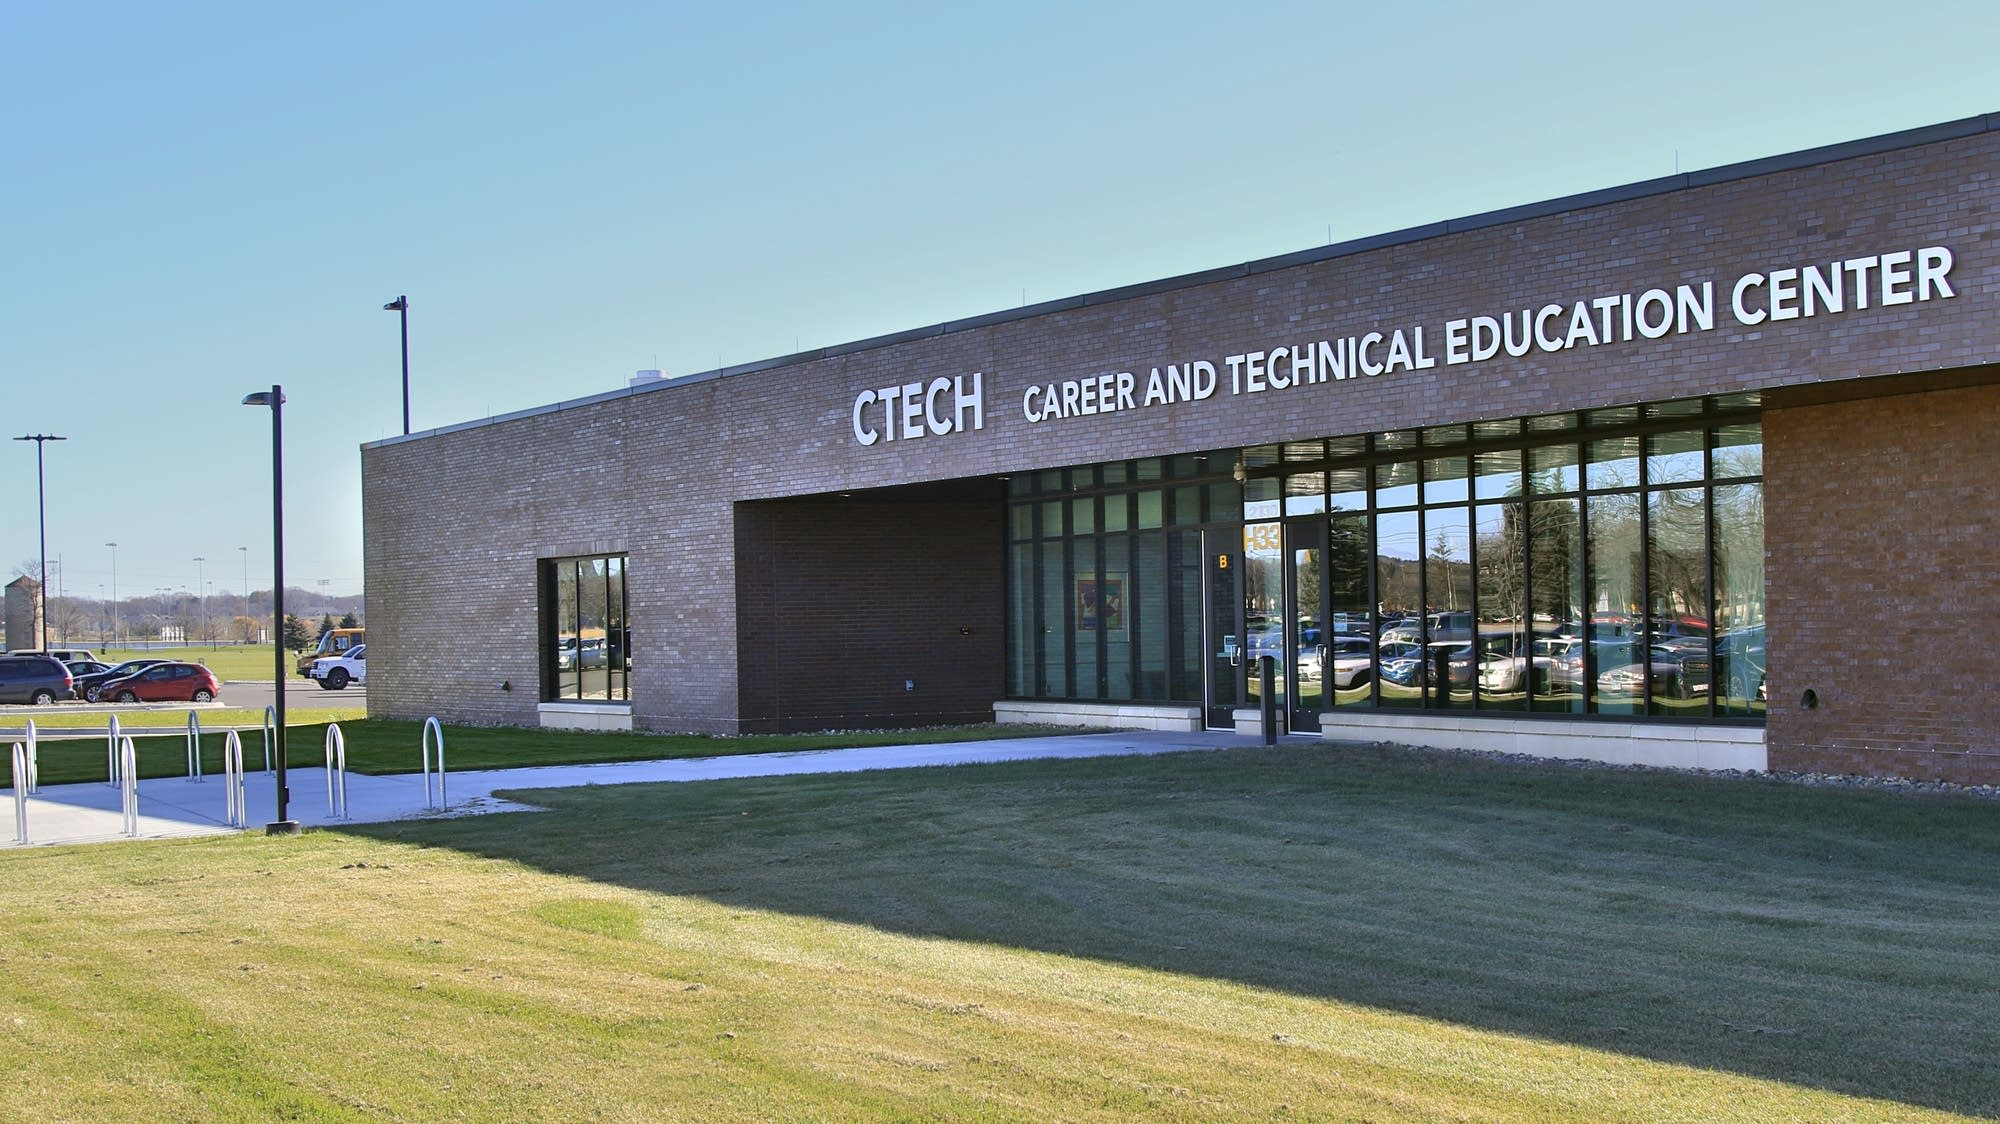 The newly constructed CTECH building